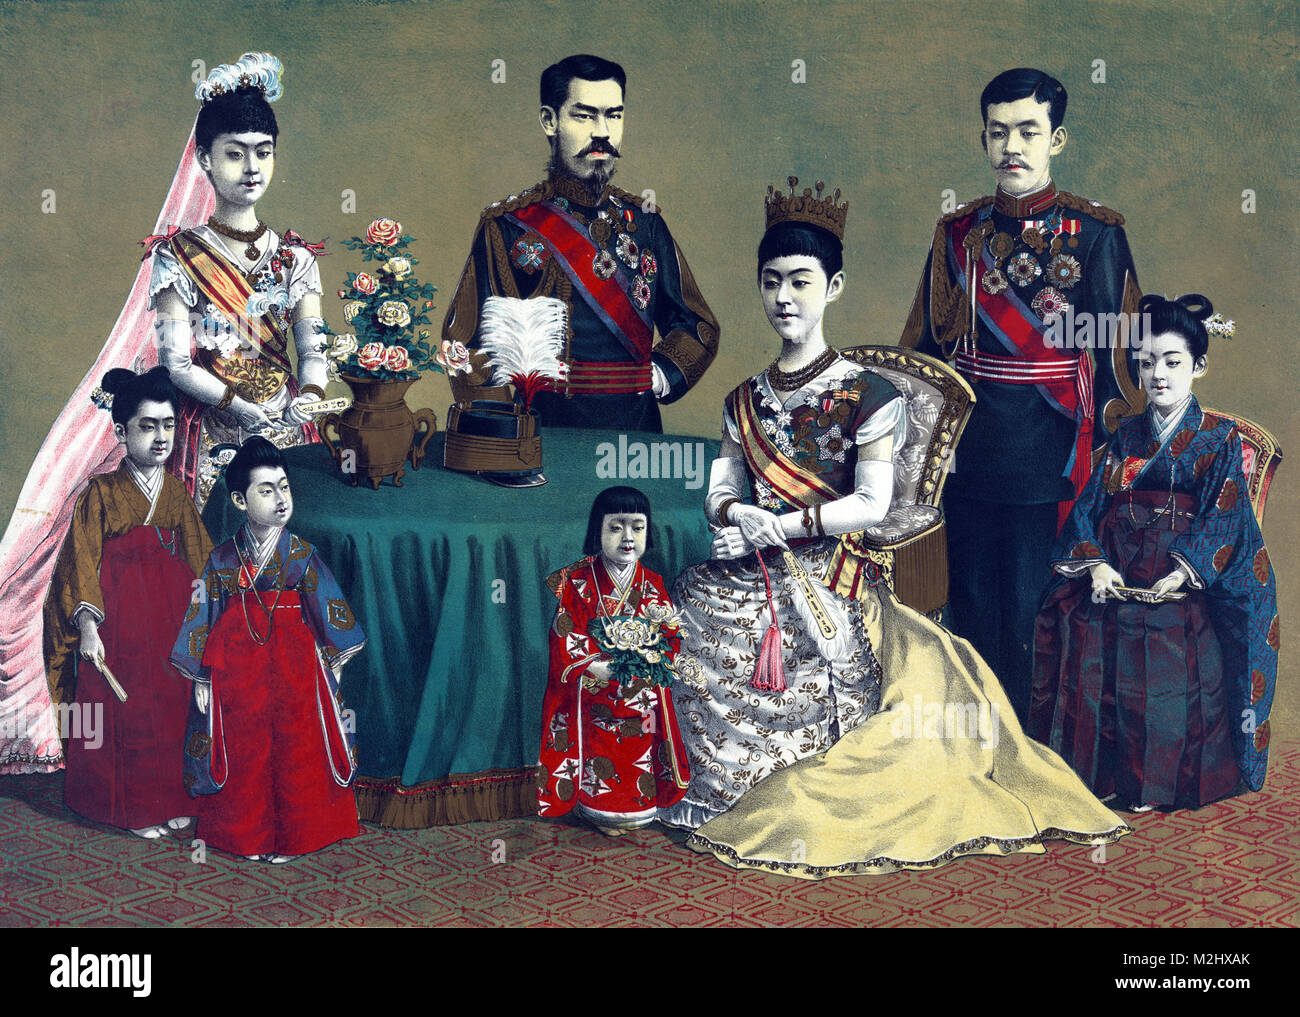 Meiji, Emperor of Japan and the Imperial Family, 1900 Stock Photo